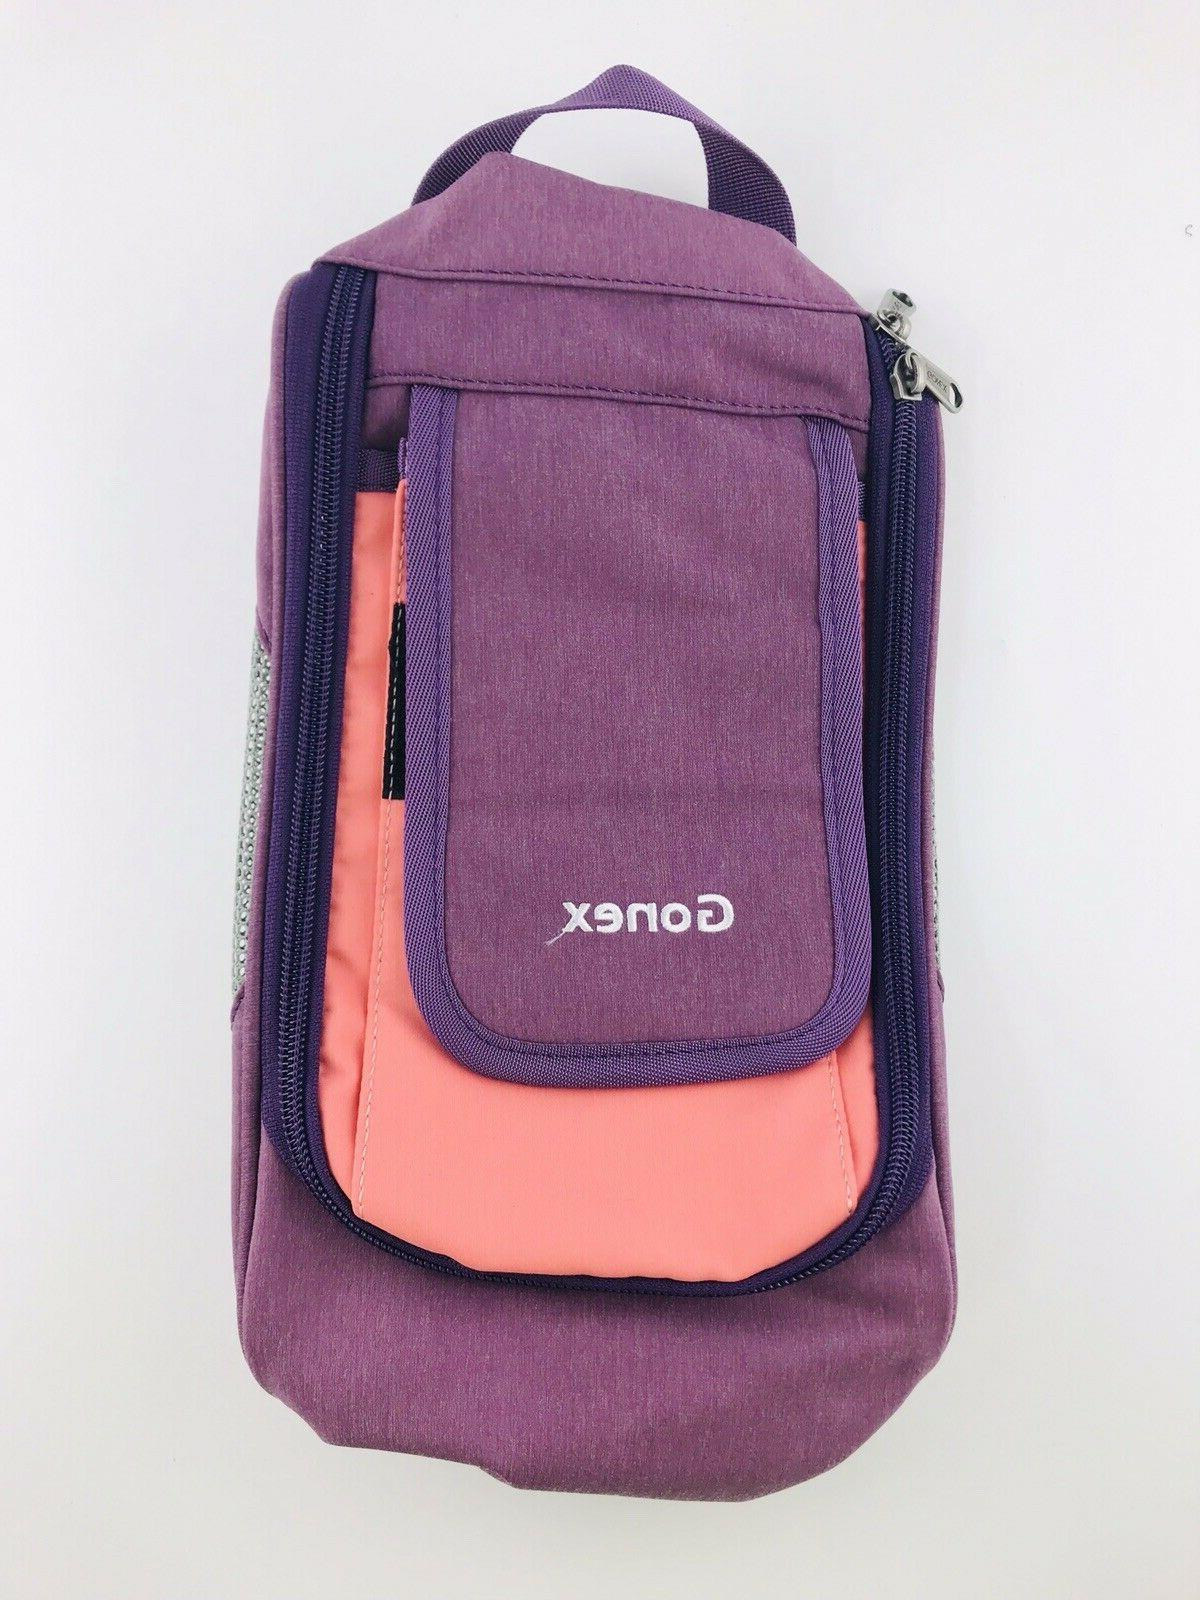 Gonex Packing Pieces Pink Purple Luggage Travel Clothing